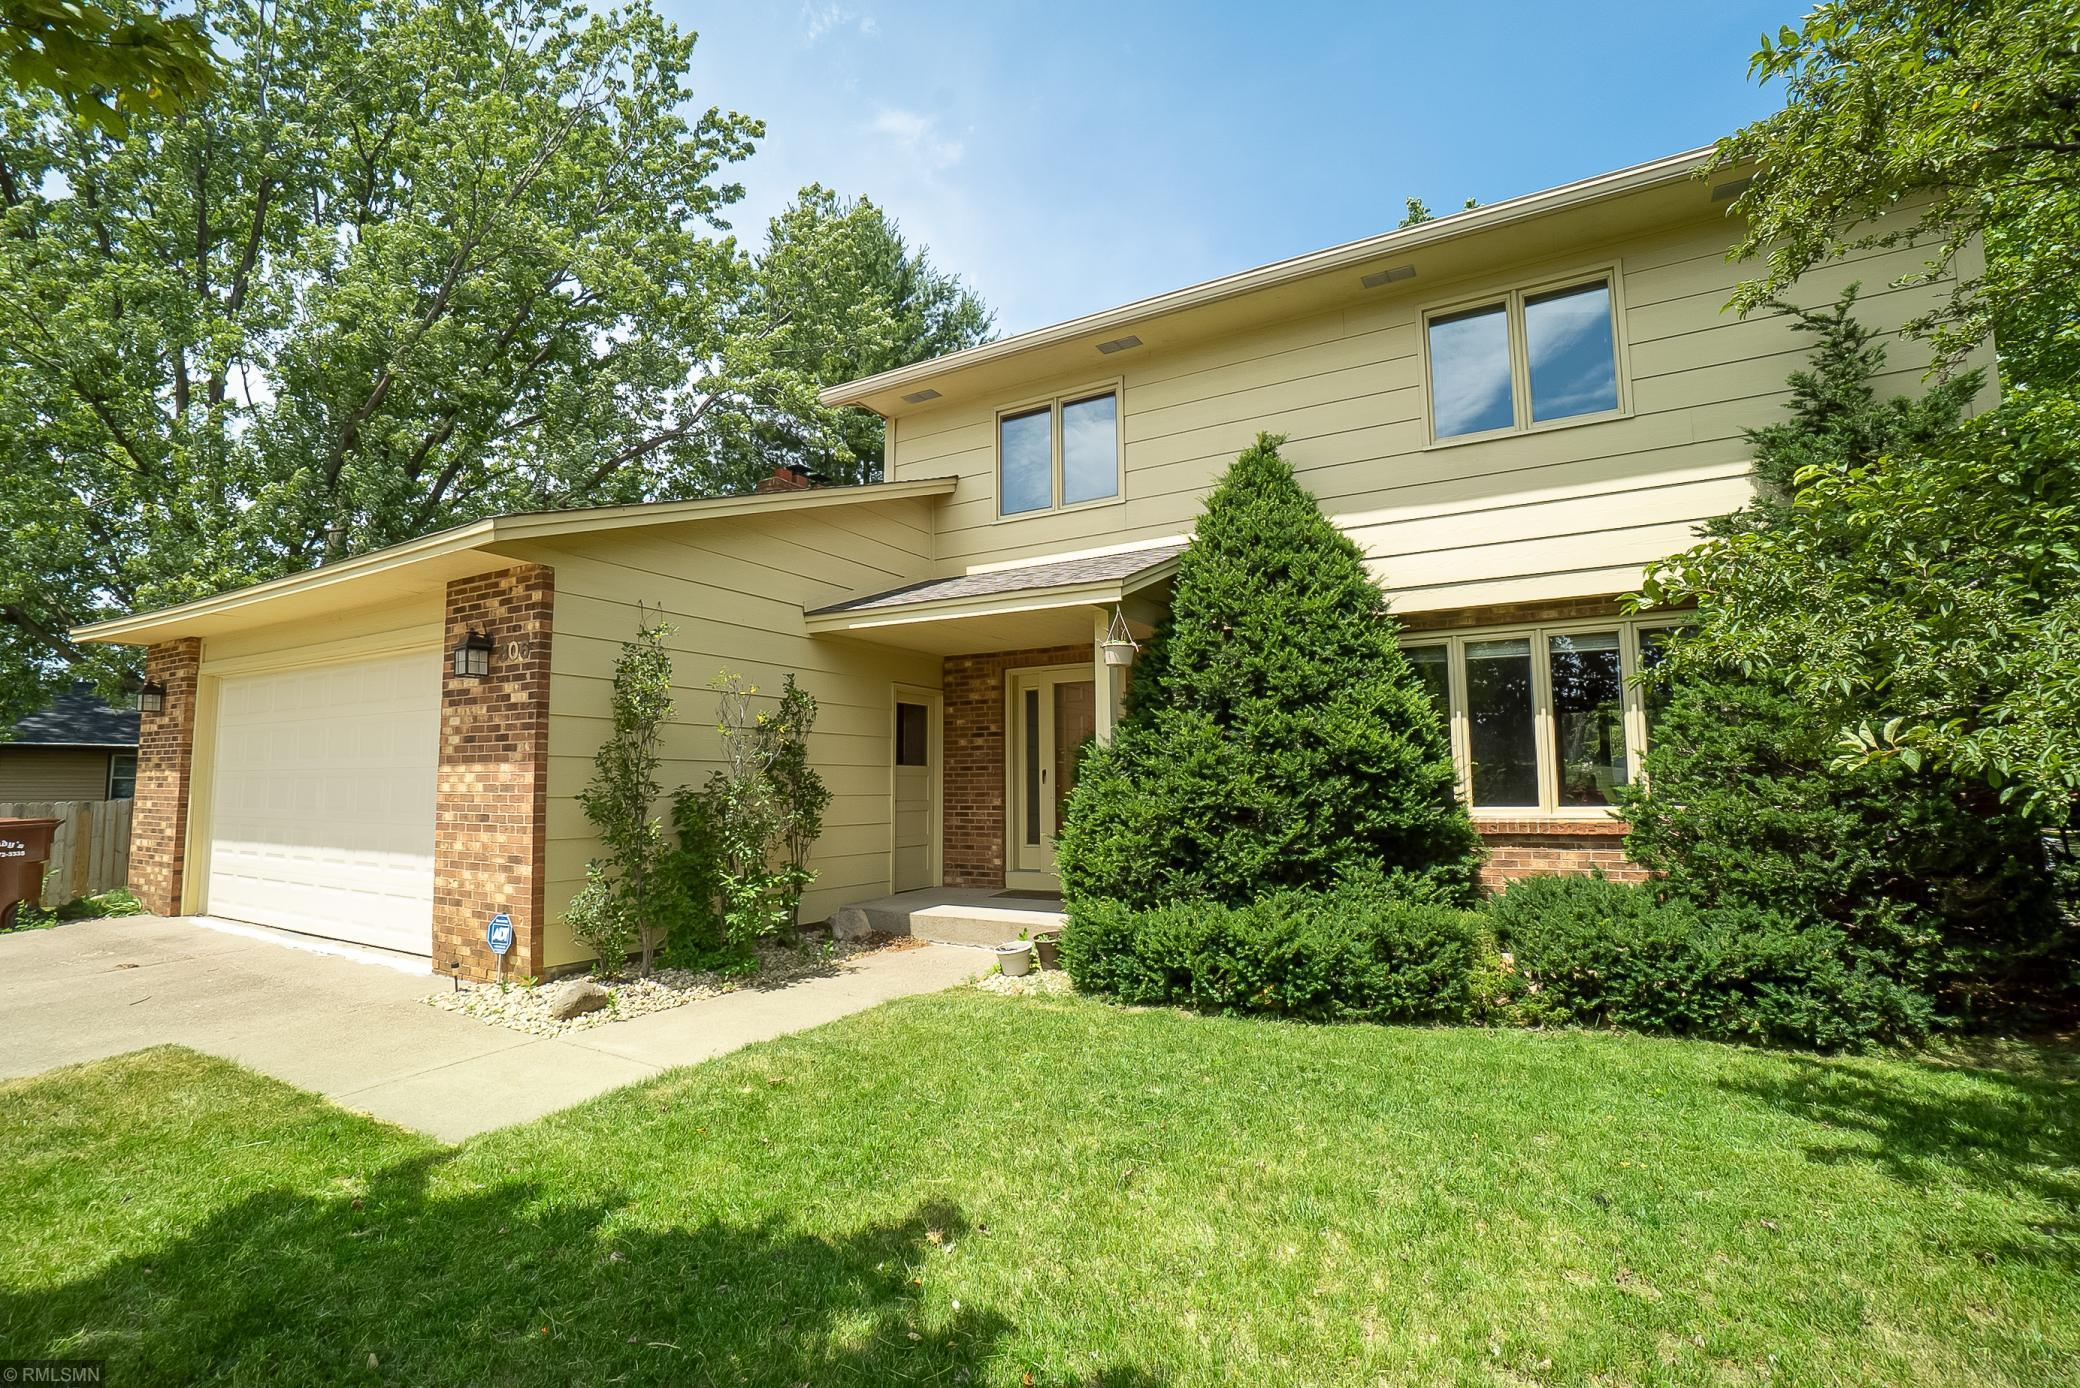 806 72nd N Property Photo - Brooklyn Center, MN real estate listing